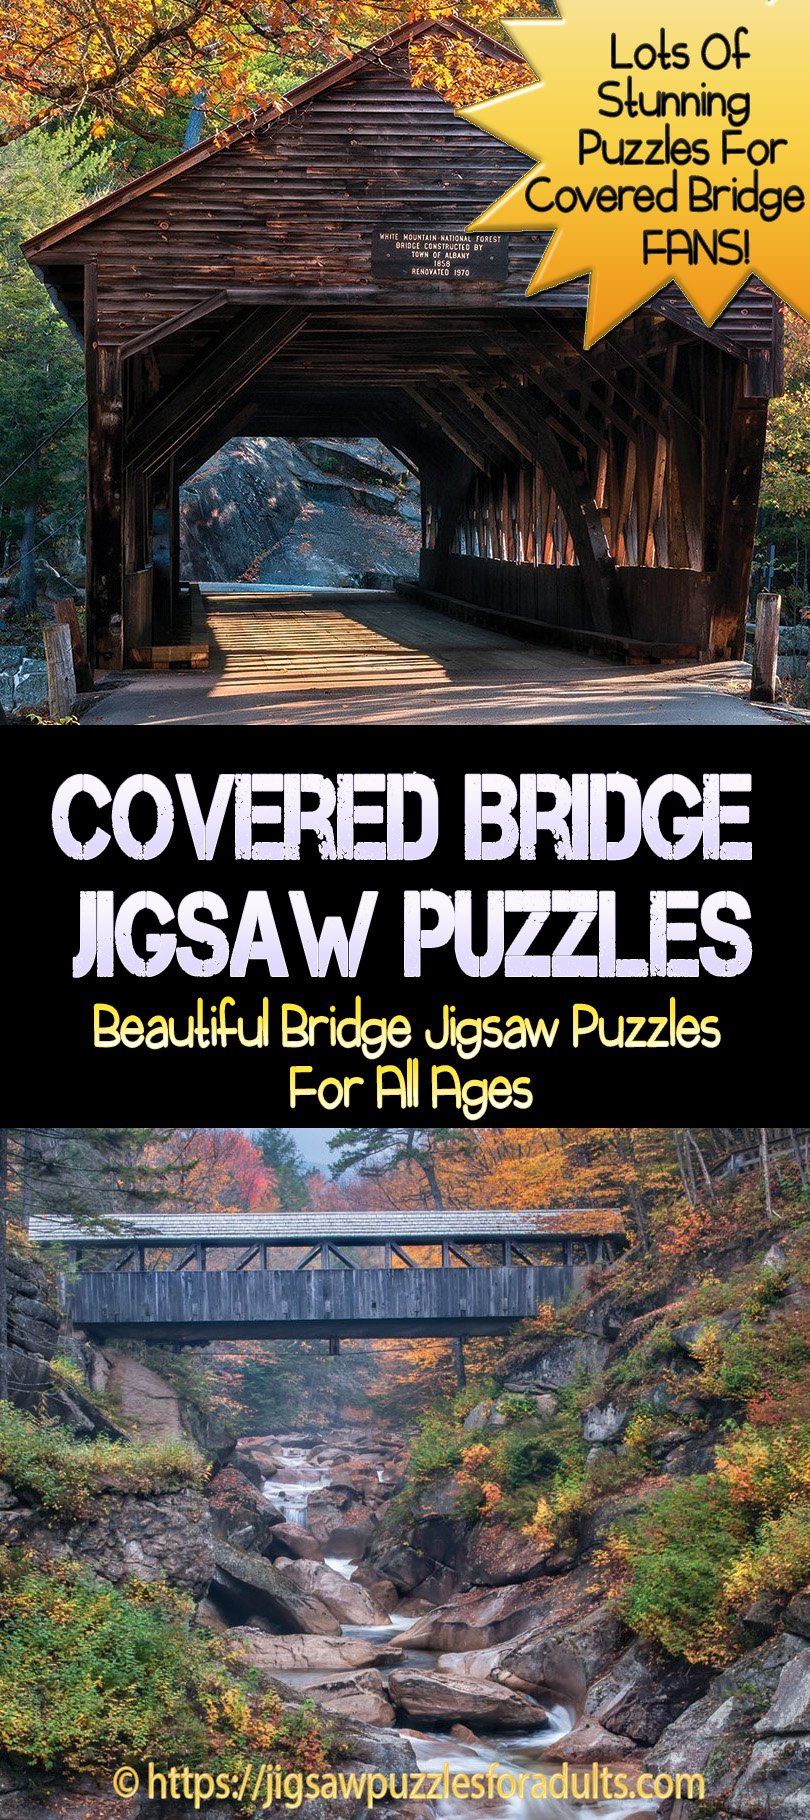 Covered Bridge Jigsaw Puzzles